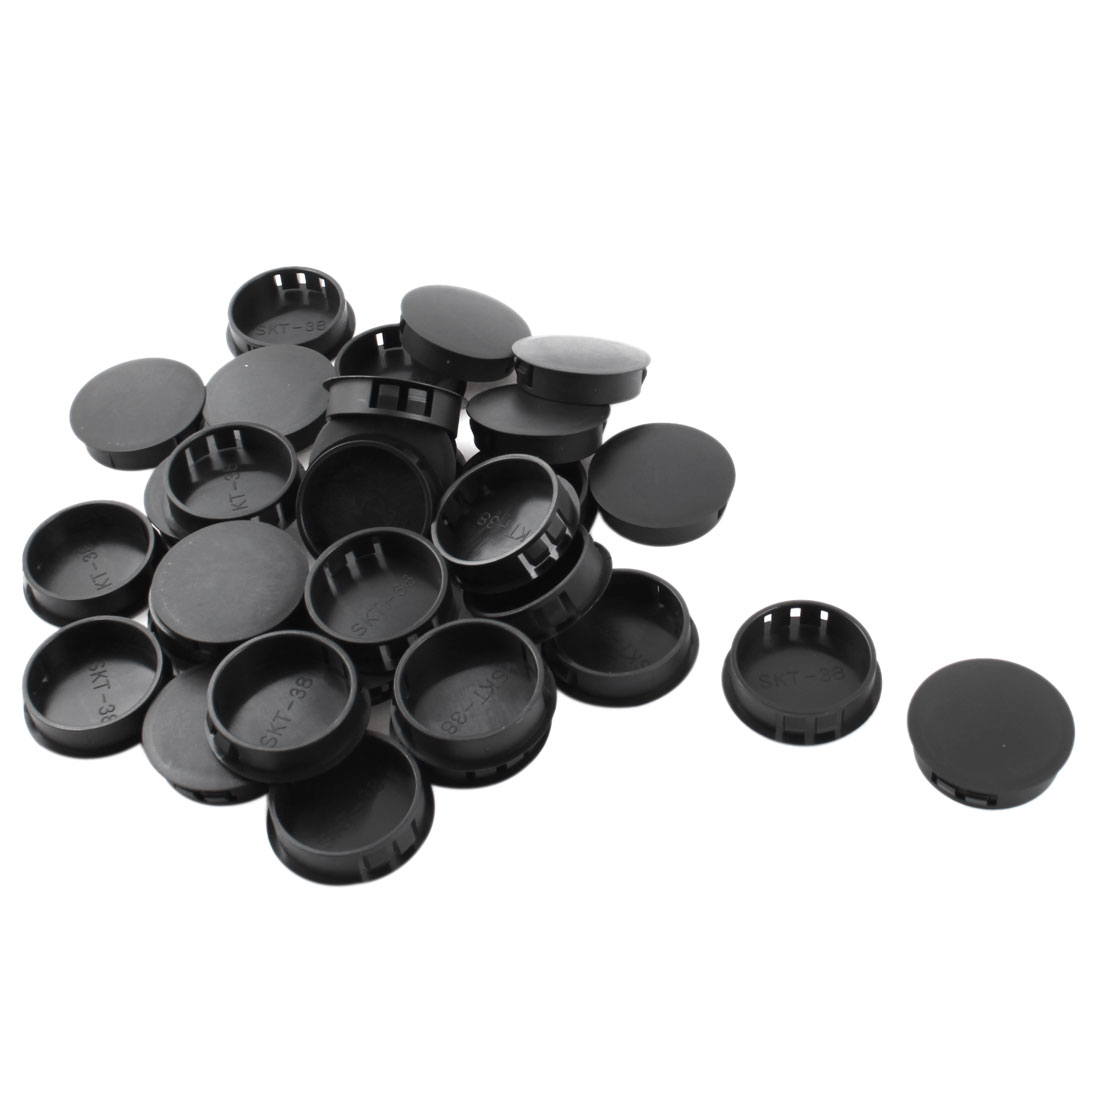 30Pcs 38mm Dia Insulated Black Plastic Snap in Mounting Blank Domed Locking Hole Plug Cover Fastener Harness